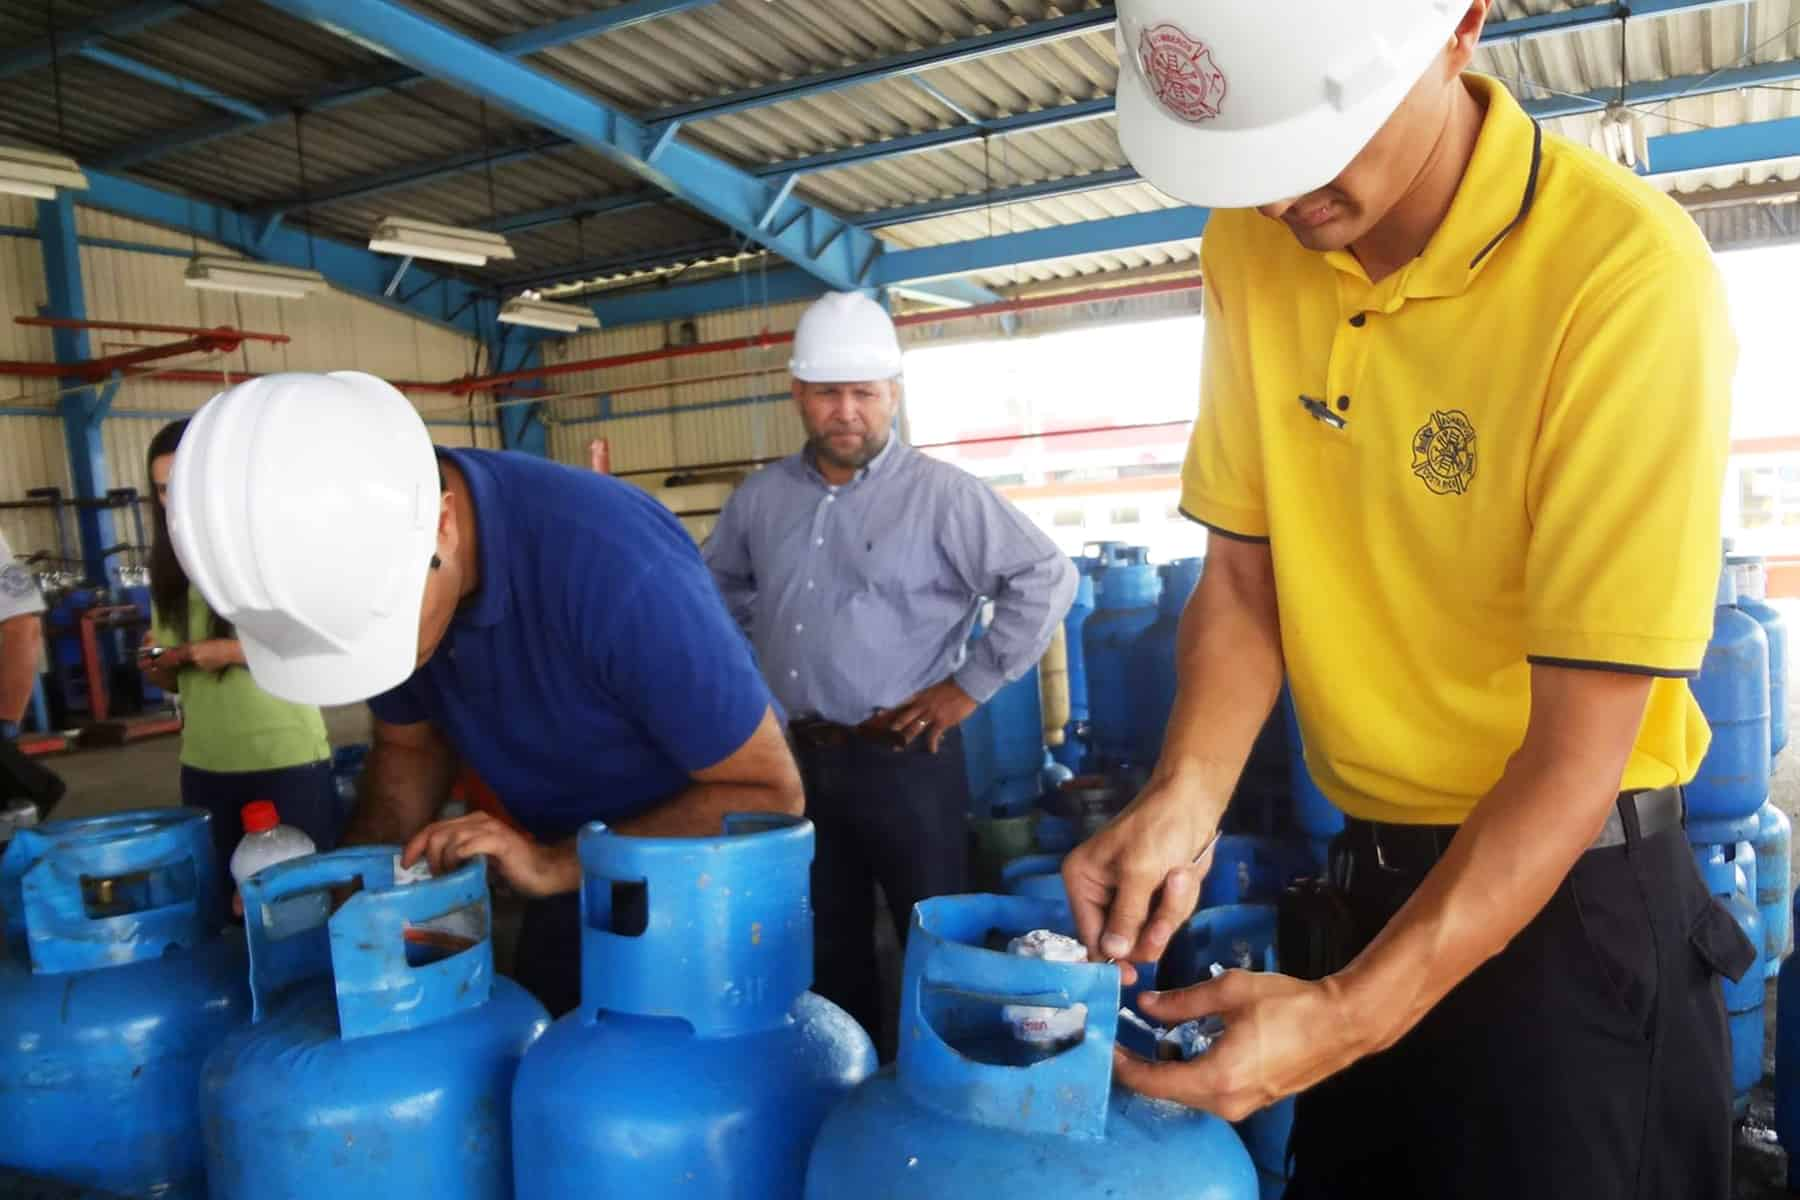 Inspection of propane cylinders